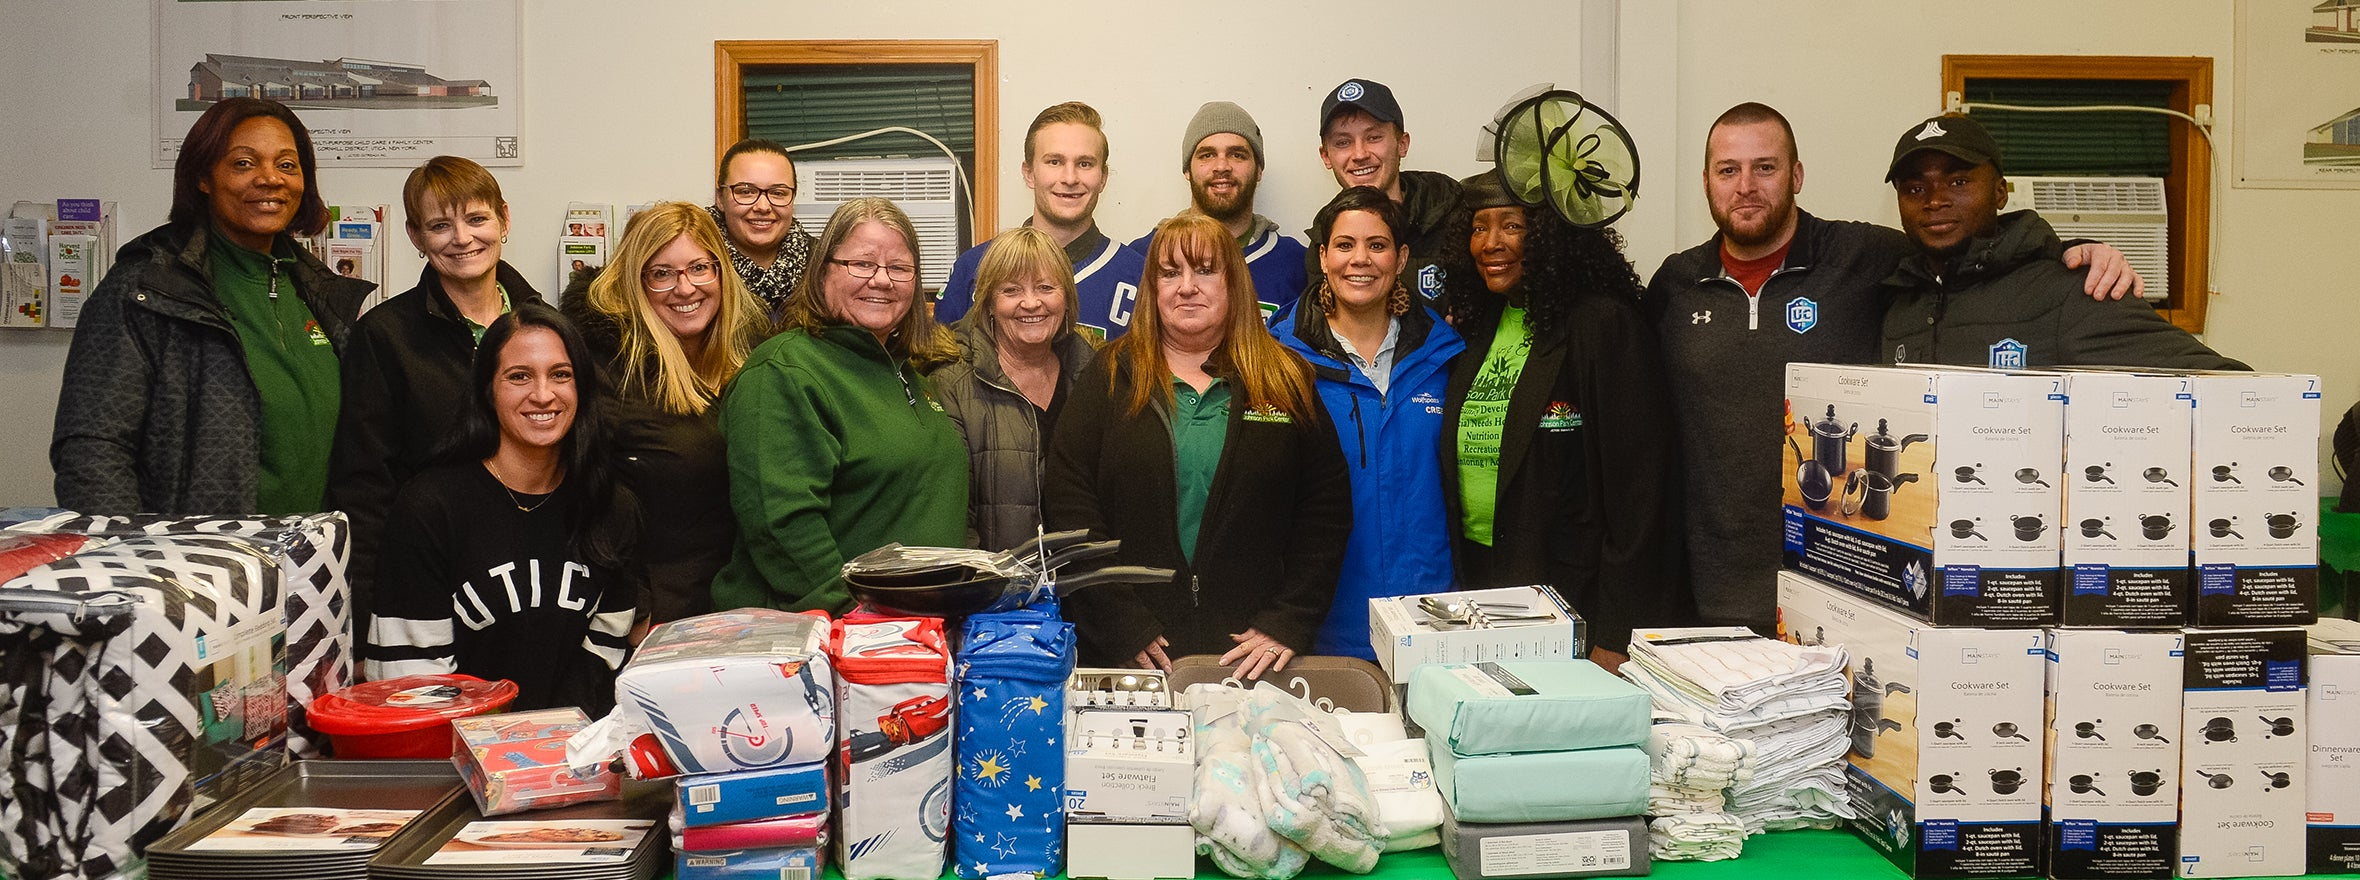 CREE, COMETS, AND UTICA CITY GIVE BACK TO JOHNSON PARK